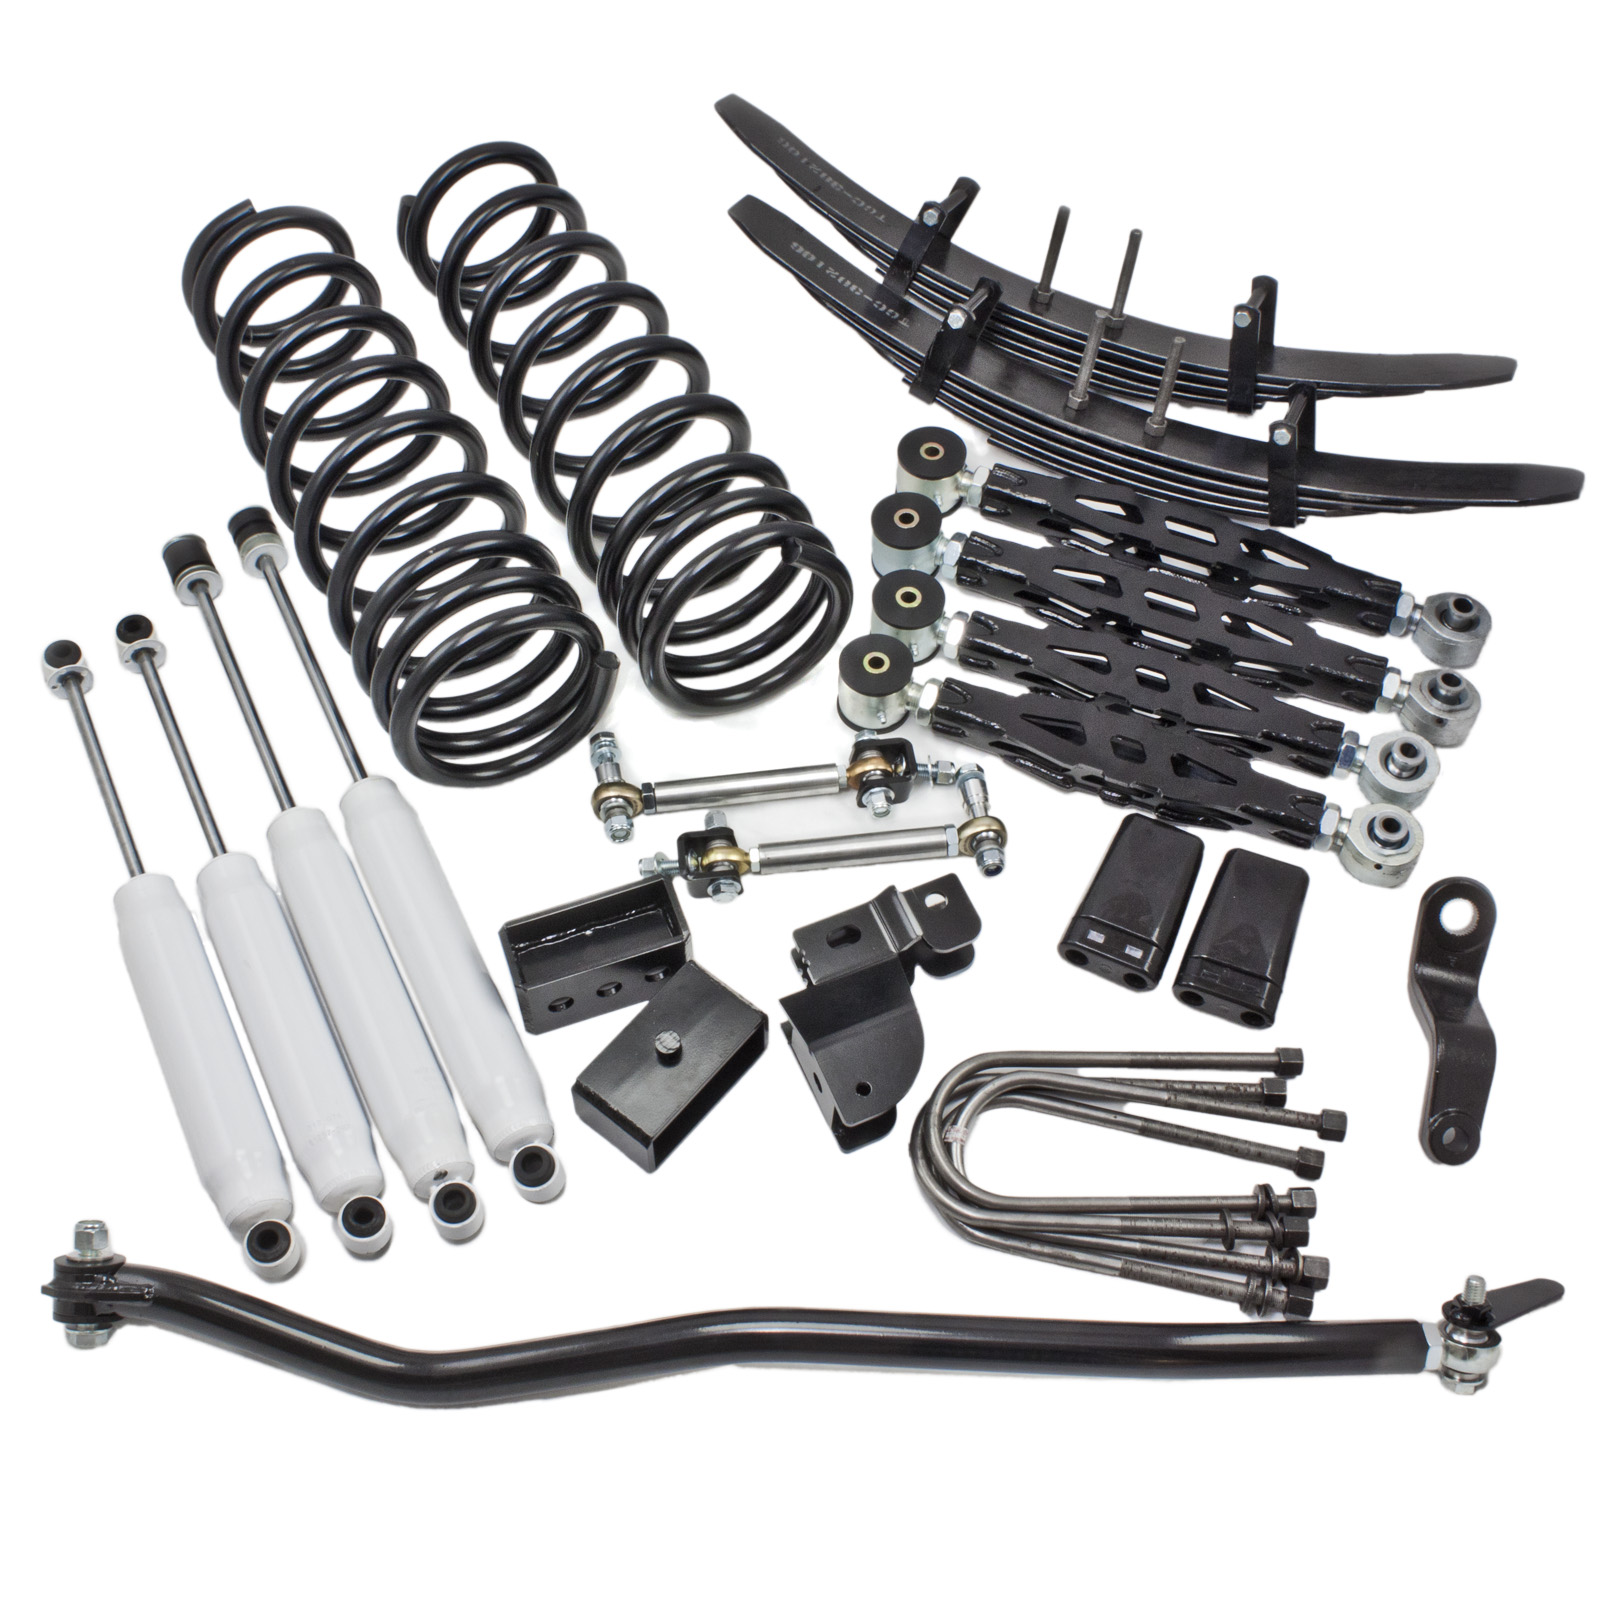 Dodge Lift Kit For 2010 Dodge Ram 3500 Truck Lift Kits